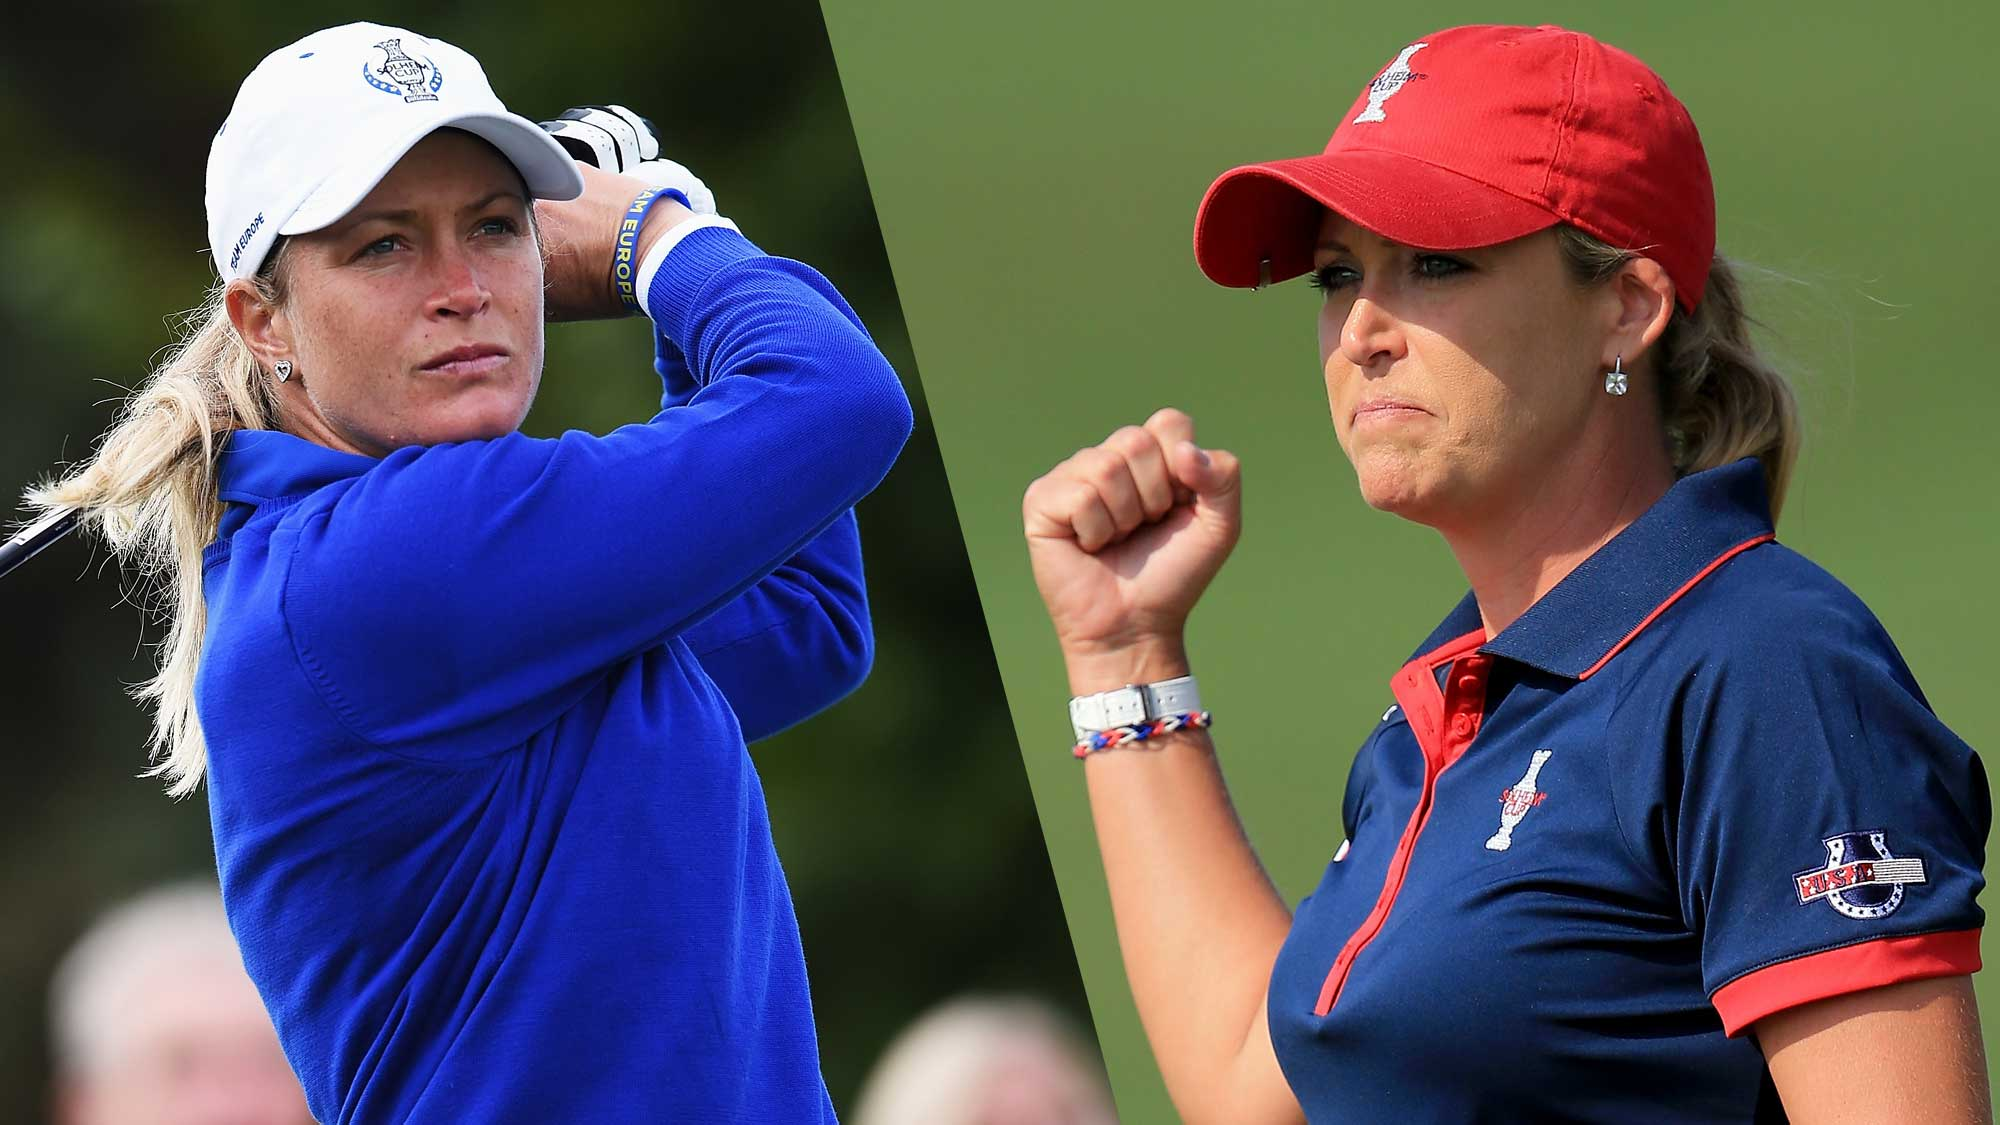 Suzann Pettersen out of Solheim Cup firing line after suffering back injury